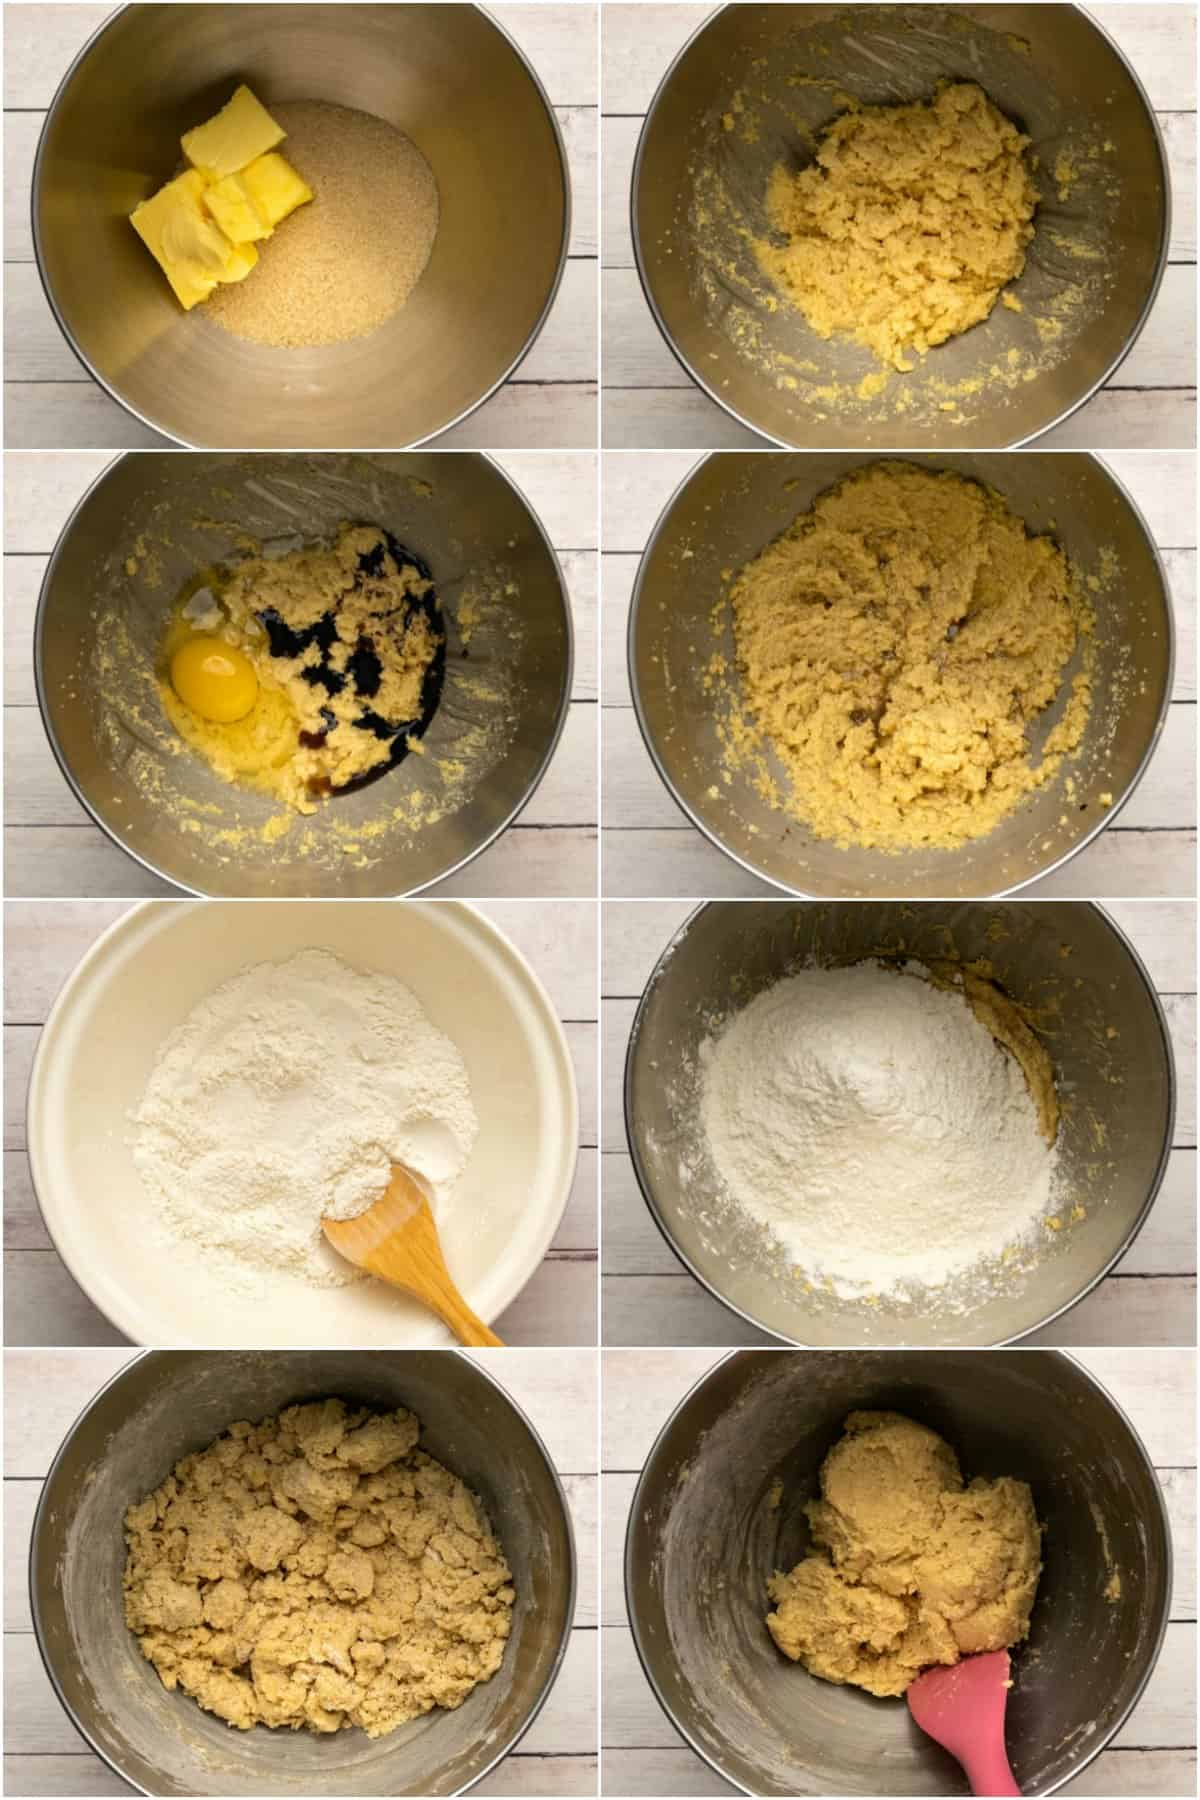 Step by step process photo collage of making chocolate chip cookie dough.